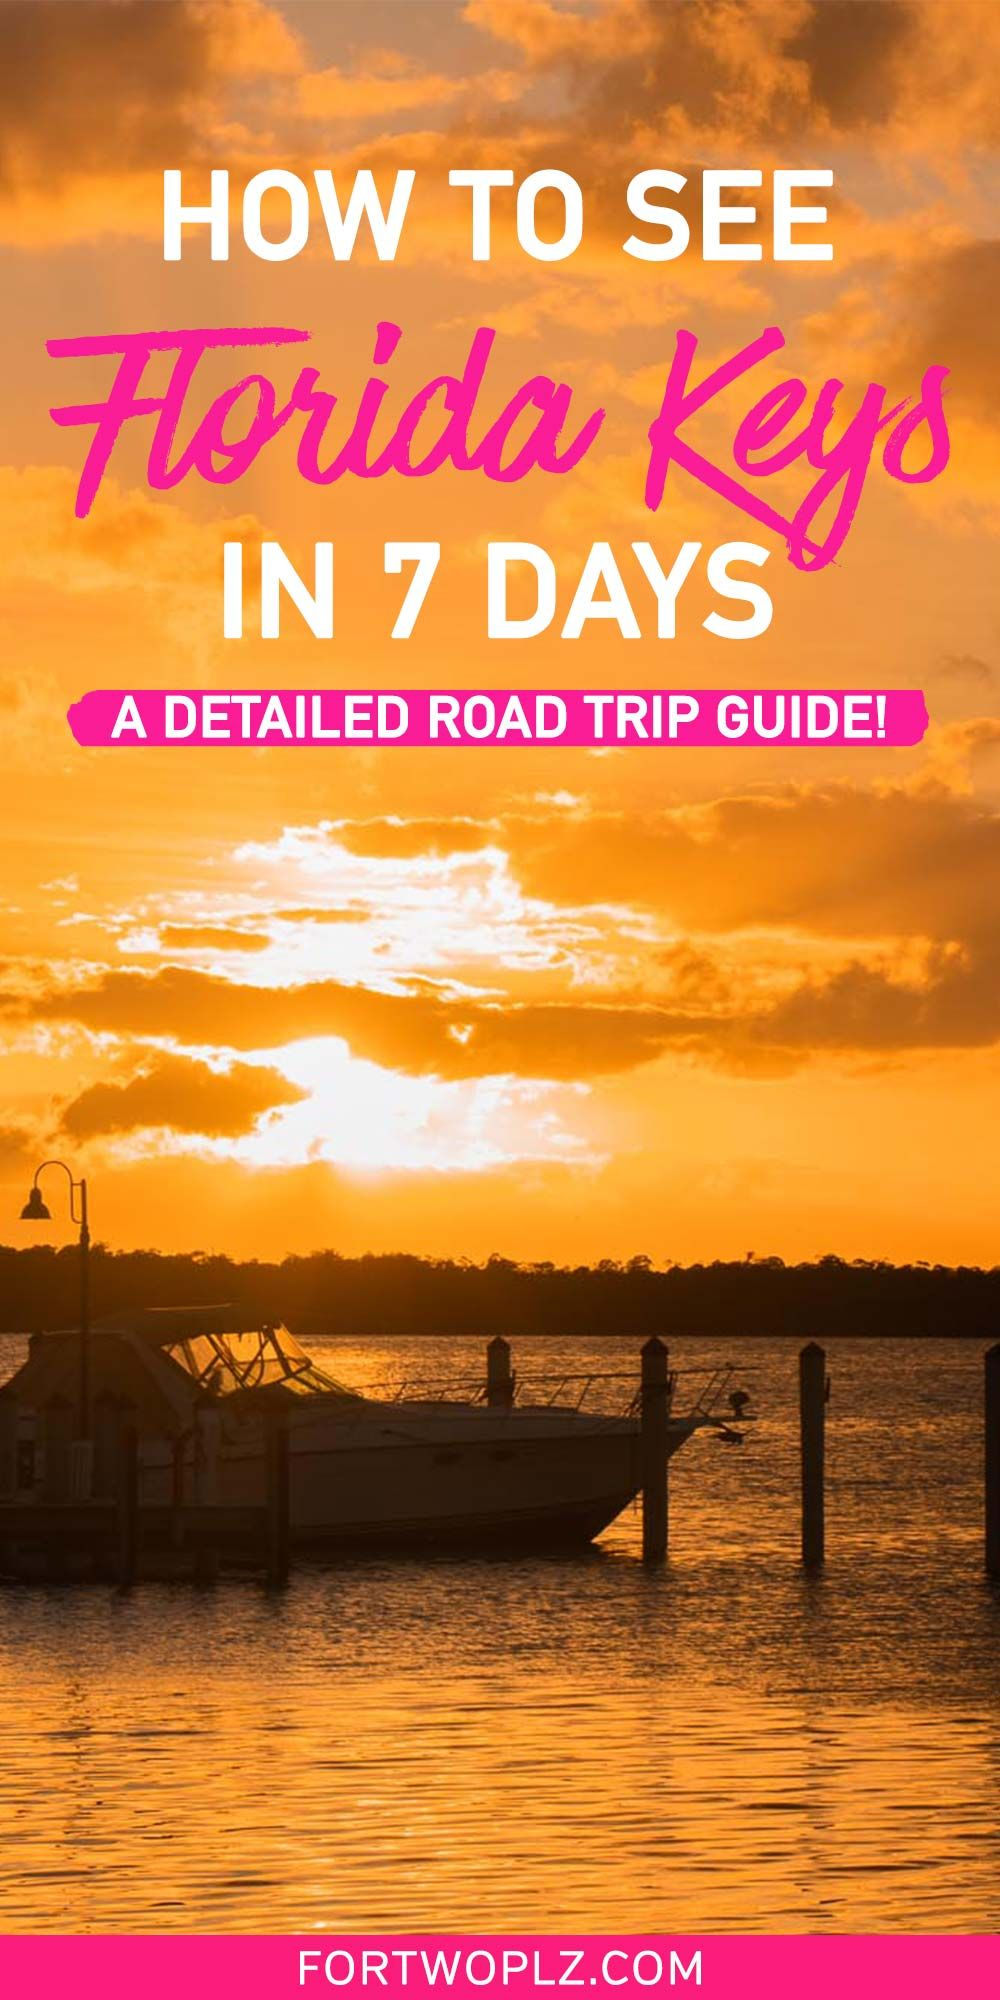 fa279699d072fc96cd5f9d7b54d677b8 - How Many Days Does It Take To Get To Florida